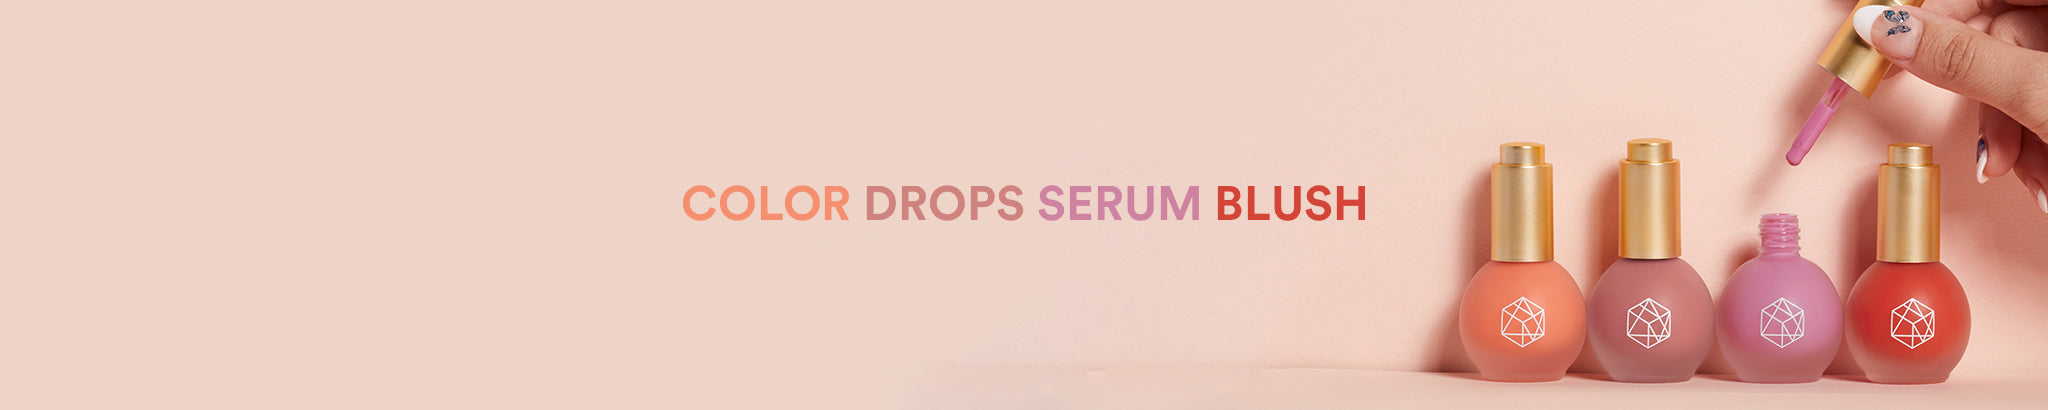 COLOR DROPS SERUM BLUSH